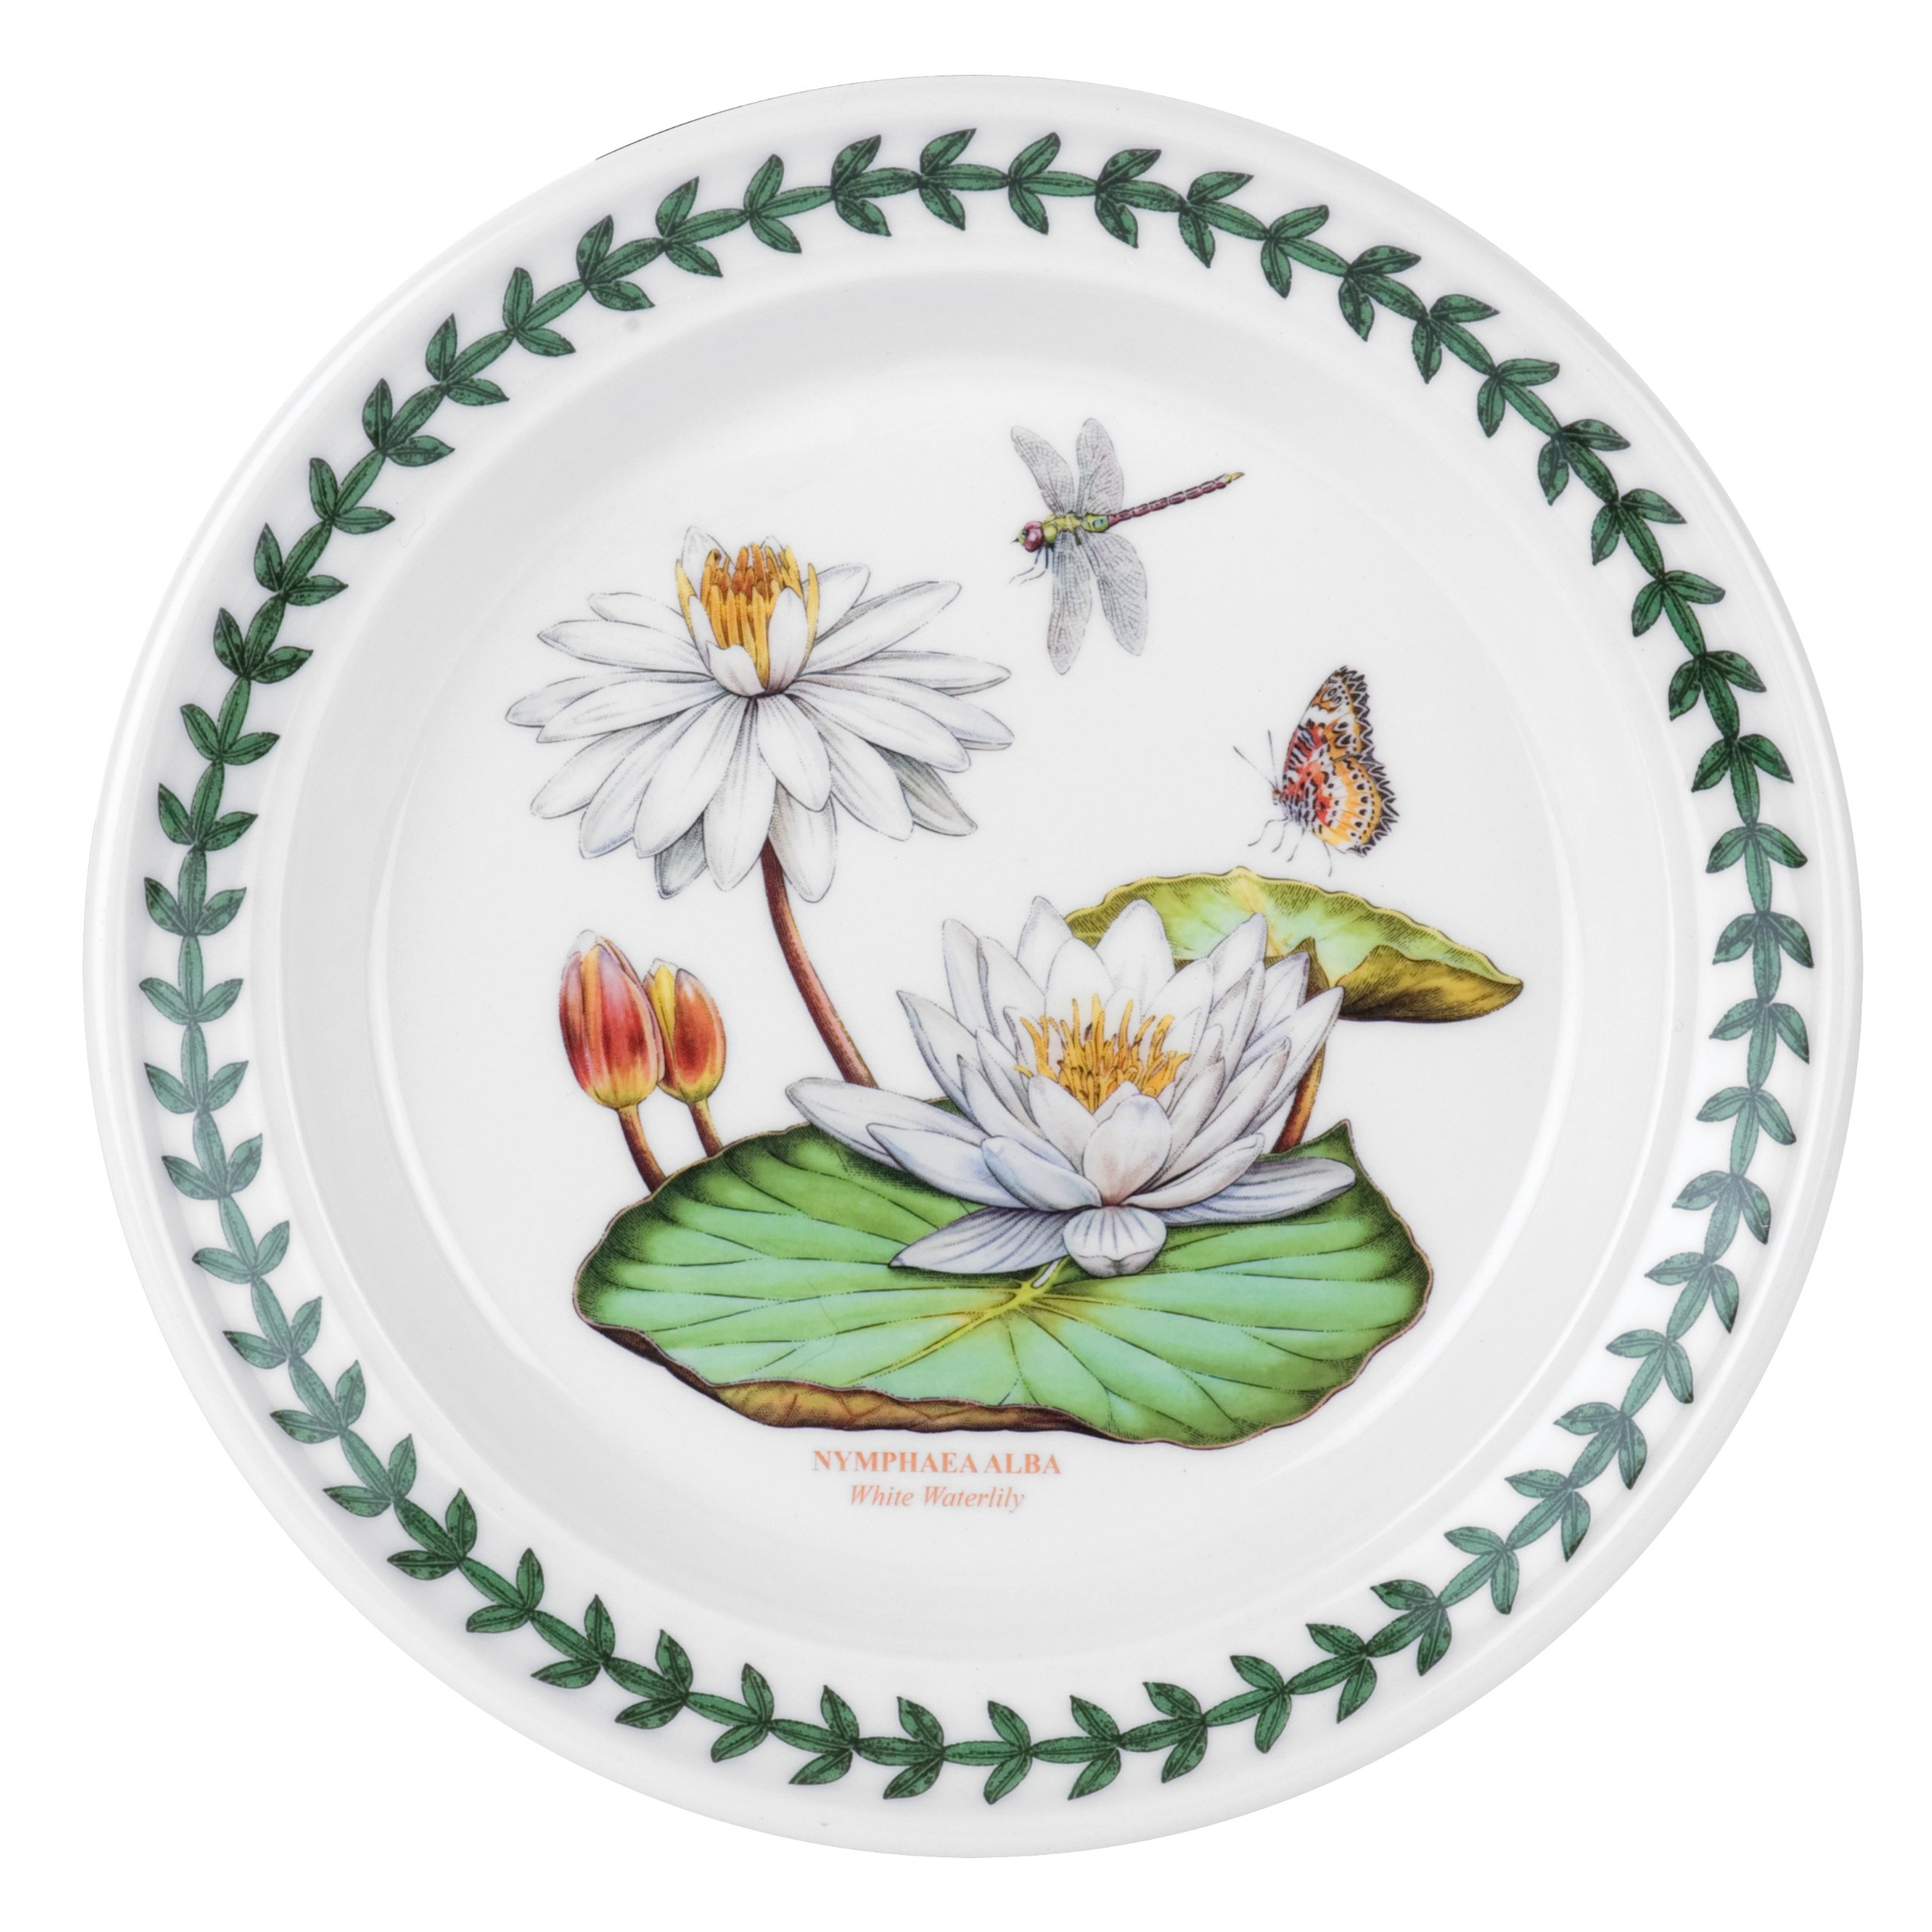 Portmeirion Exotic Botanic Garden Bread and Butter Plate with White Water Lily Motif, Set of 6